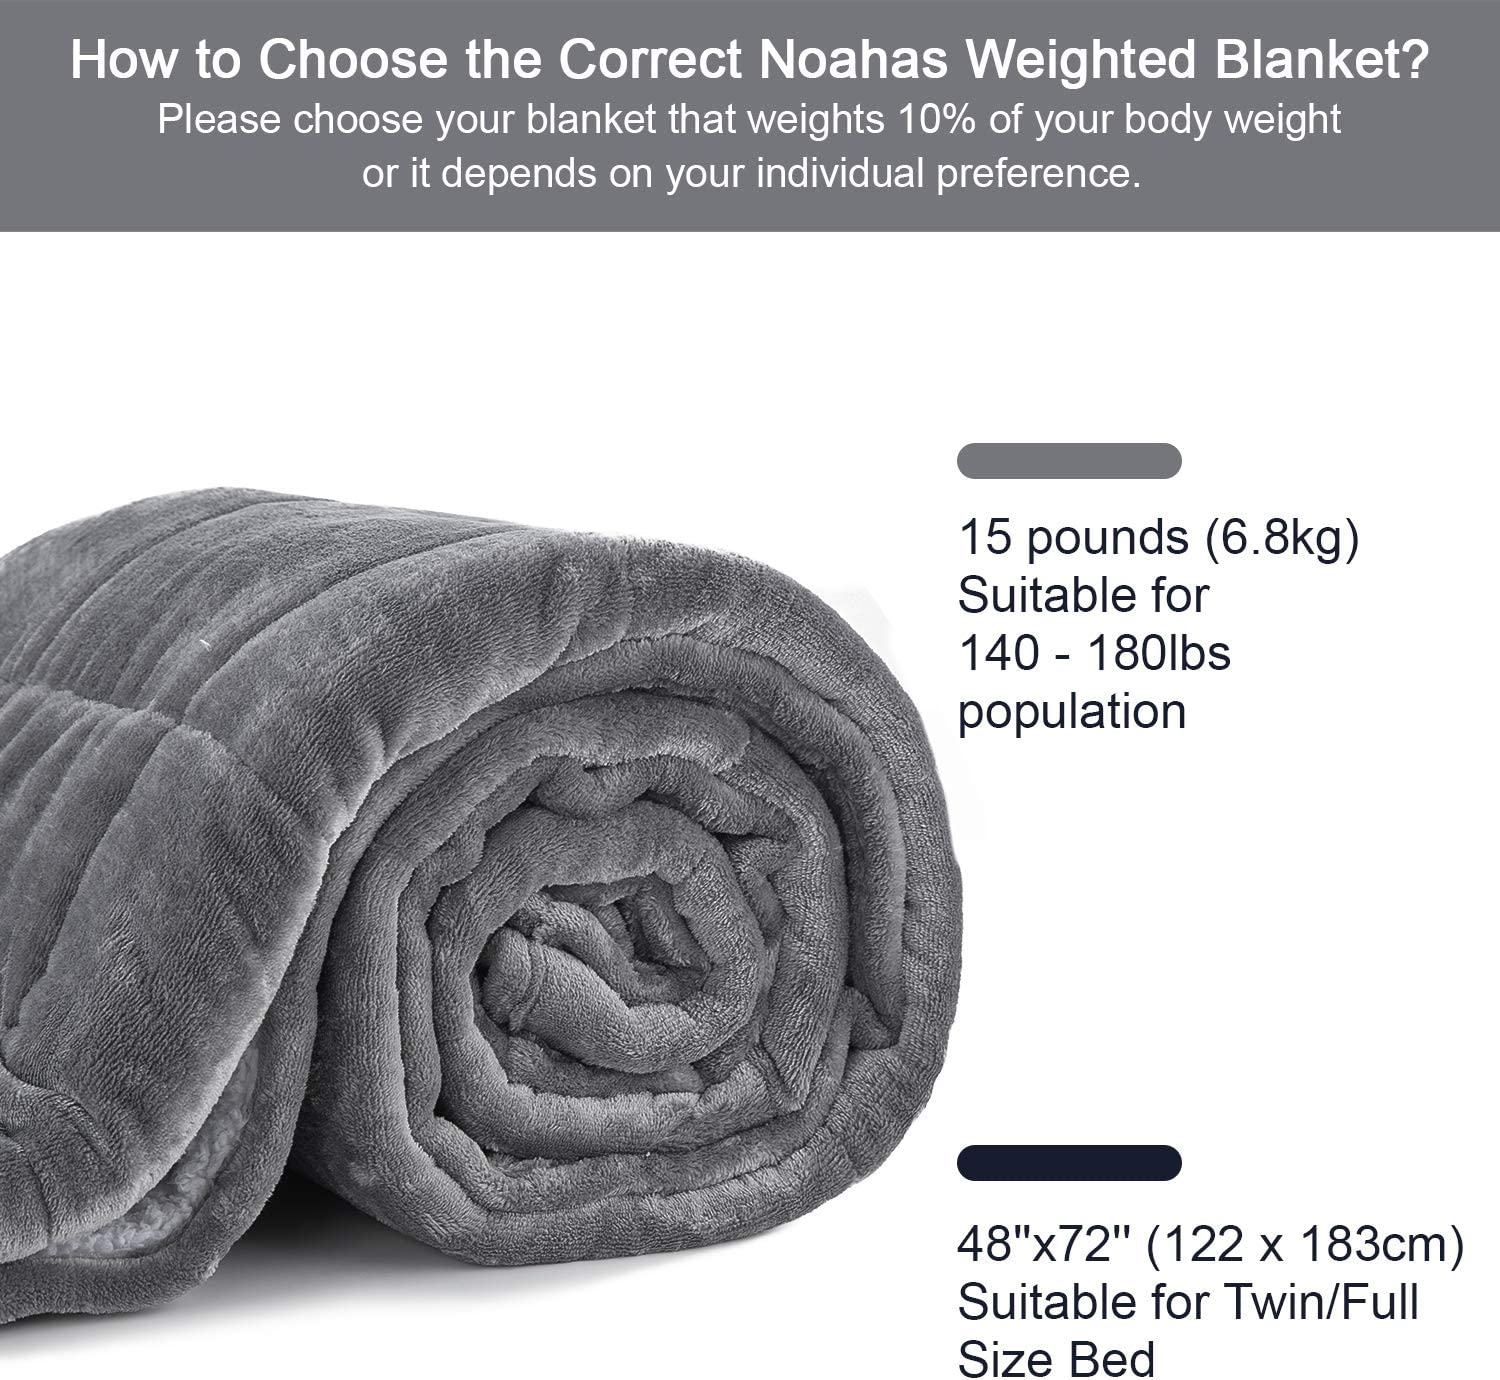 15 lbs 48x72 Warm Heavy Blanket for Adults Twin Size Sherpa Fleece Blanket for Individual Between 140-180 lbs Noahas Weighted Blanket 100/% Natural Cotton with Premium Glass Beads Grey